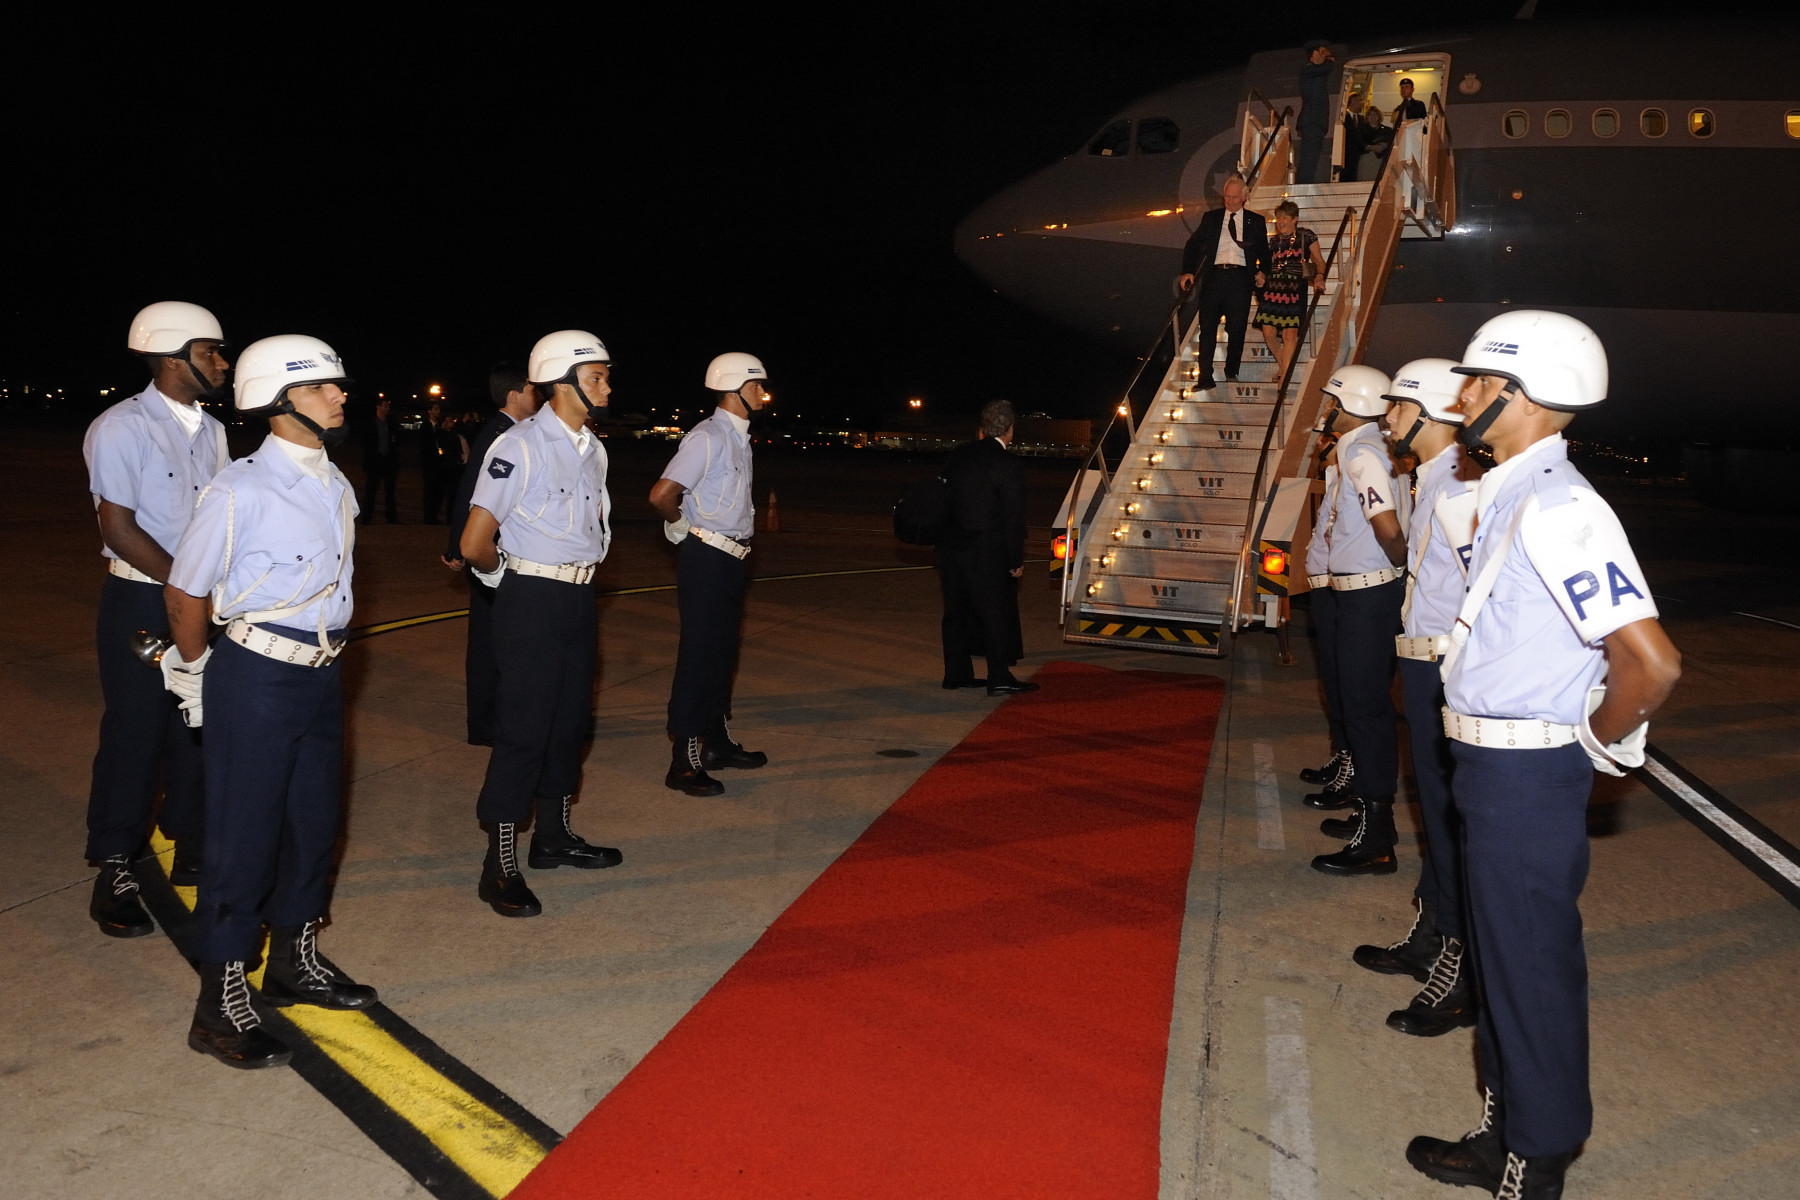 Upon their arrival in Rio de Janeiro later that evening, Their Excellencies were welcomed by government officials.